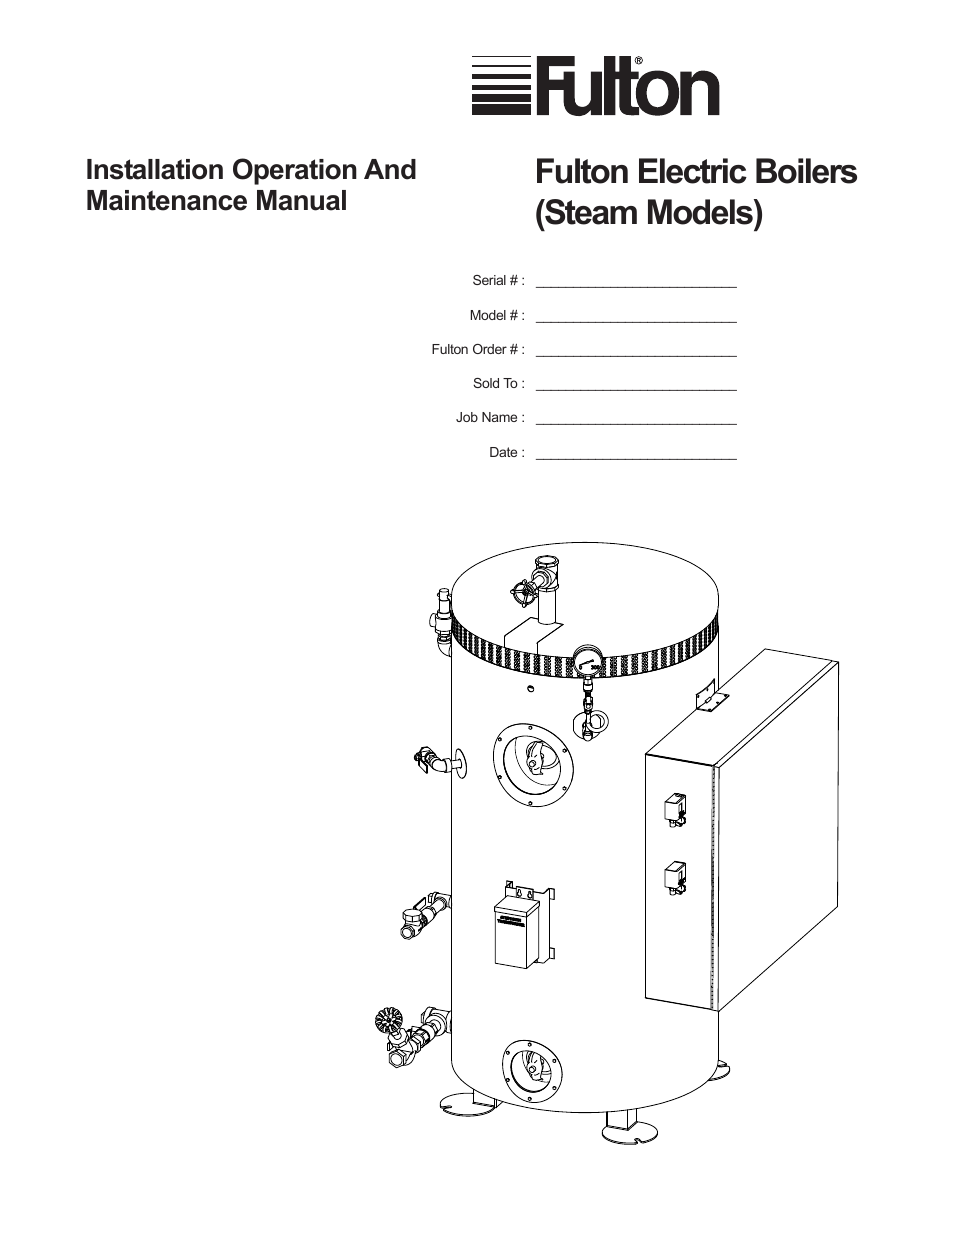 fulton electric fb l steam boiler page1 fulton electric (fb l) steam boiler user manual 46 pages steam boiler wiring diagram at panicattacktreatment.co